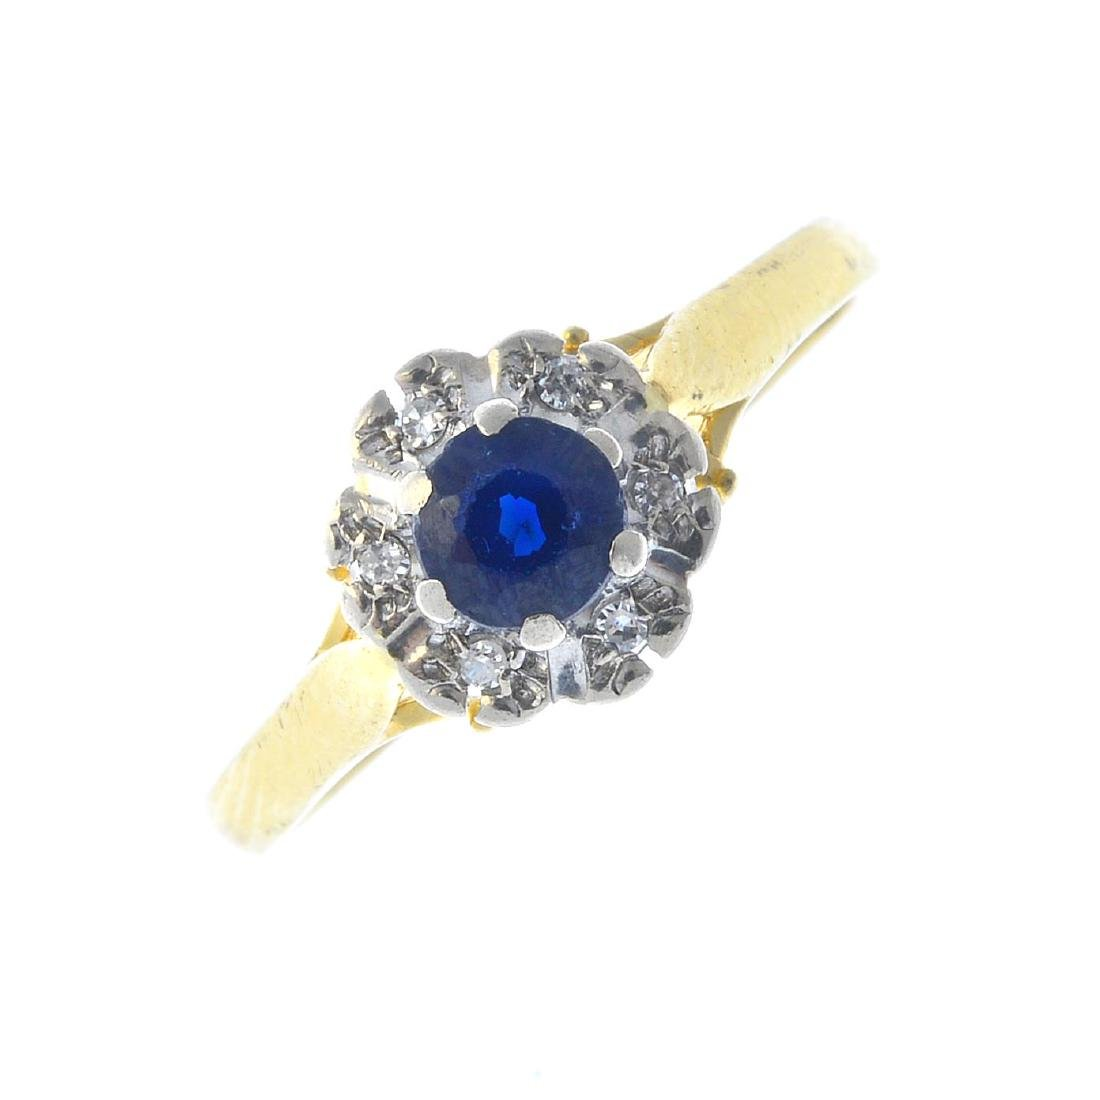 A 1960s 18ct gold sapphire and diamond ring. The